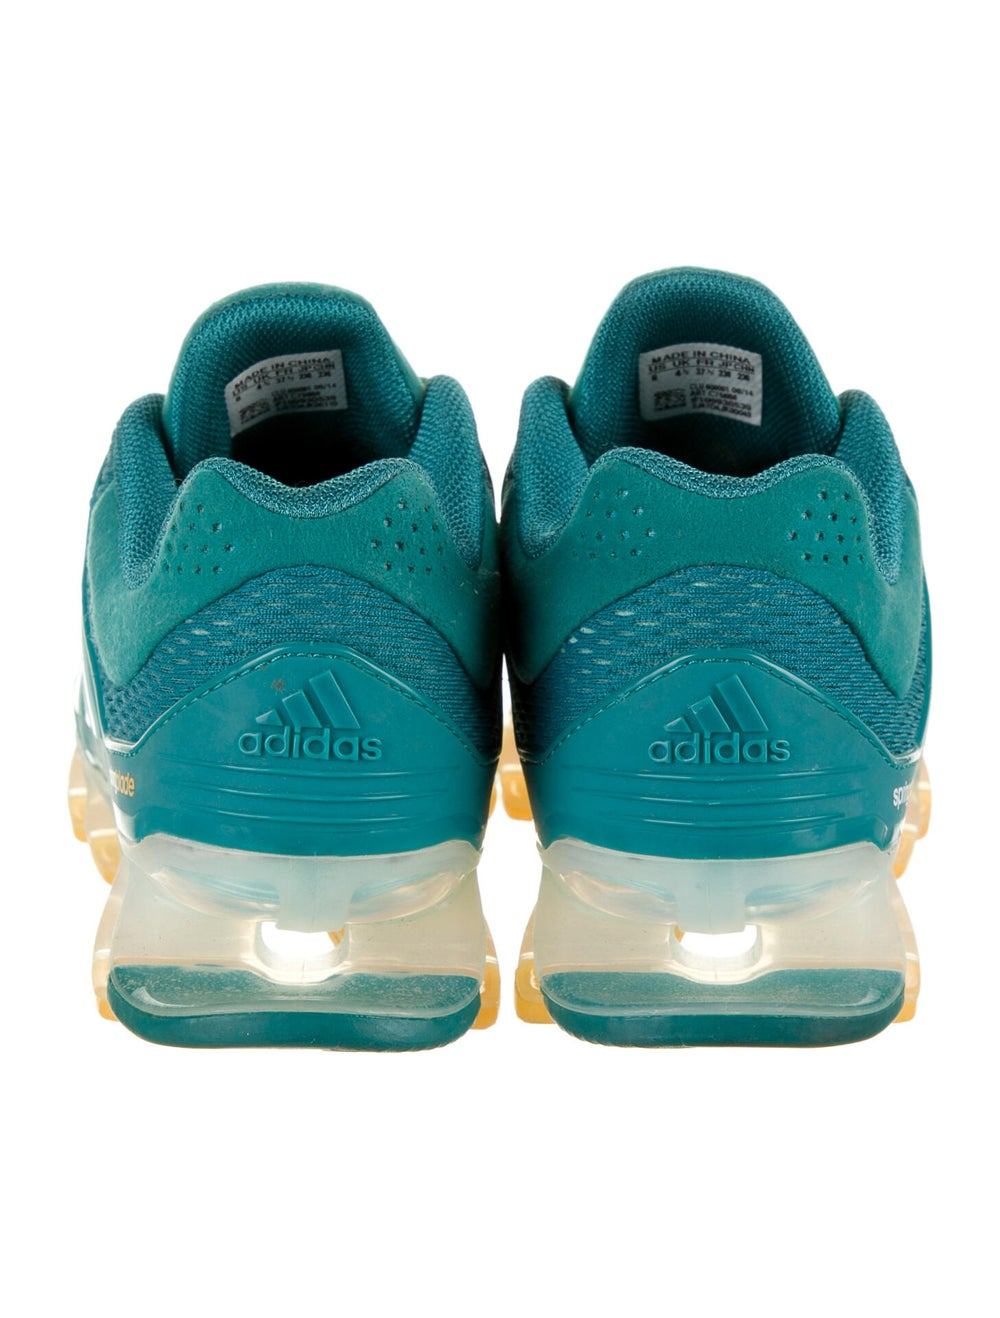 Adidas Springblade Drive Athletic Sneakers Green - image 4